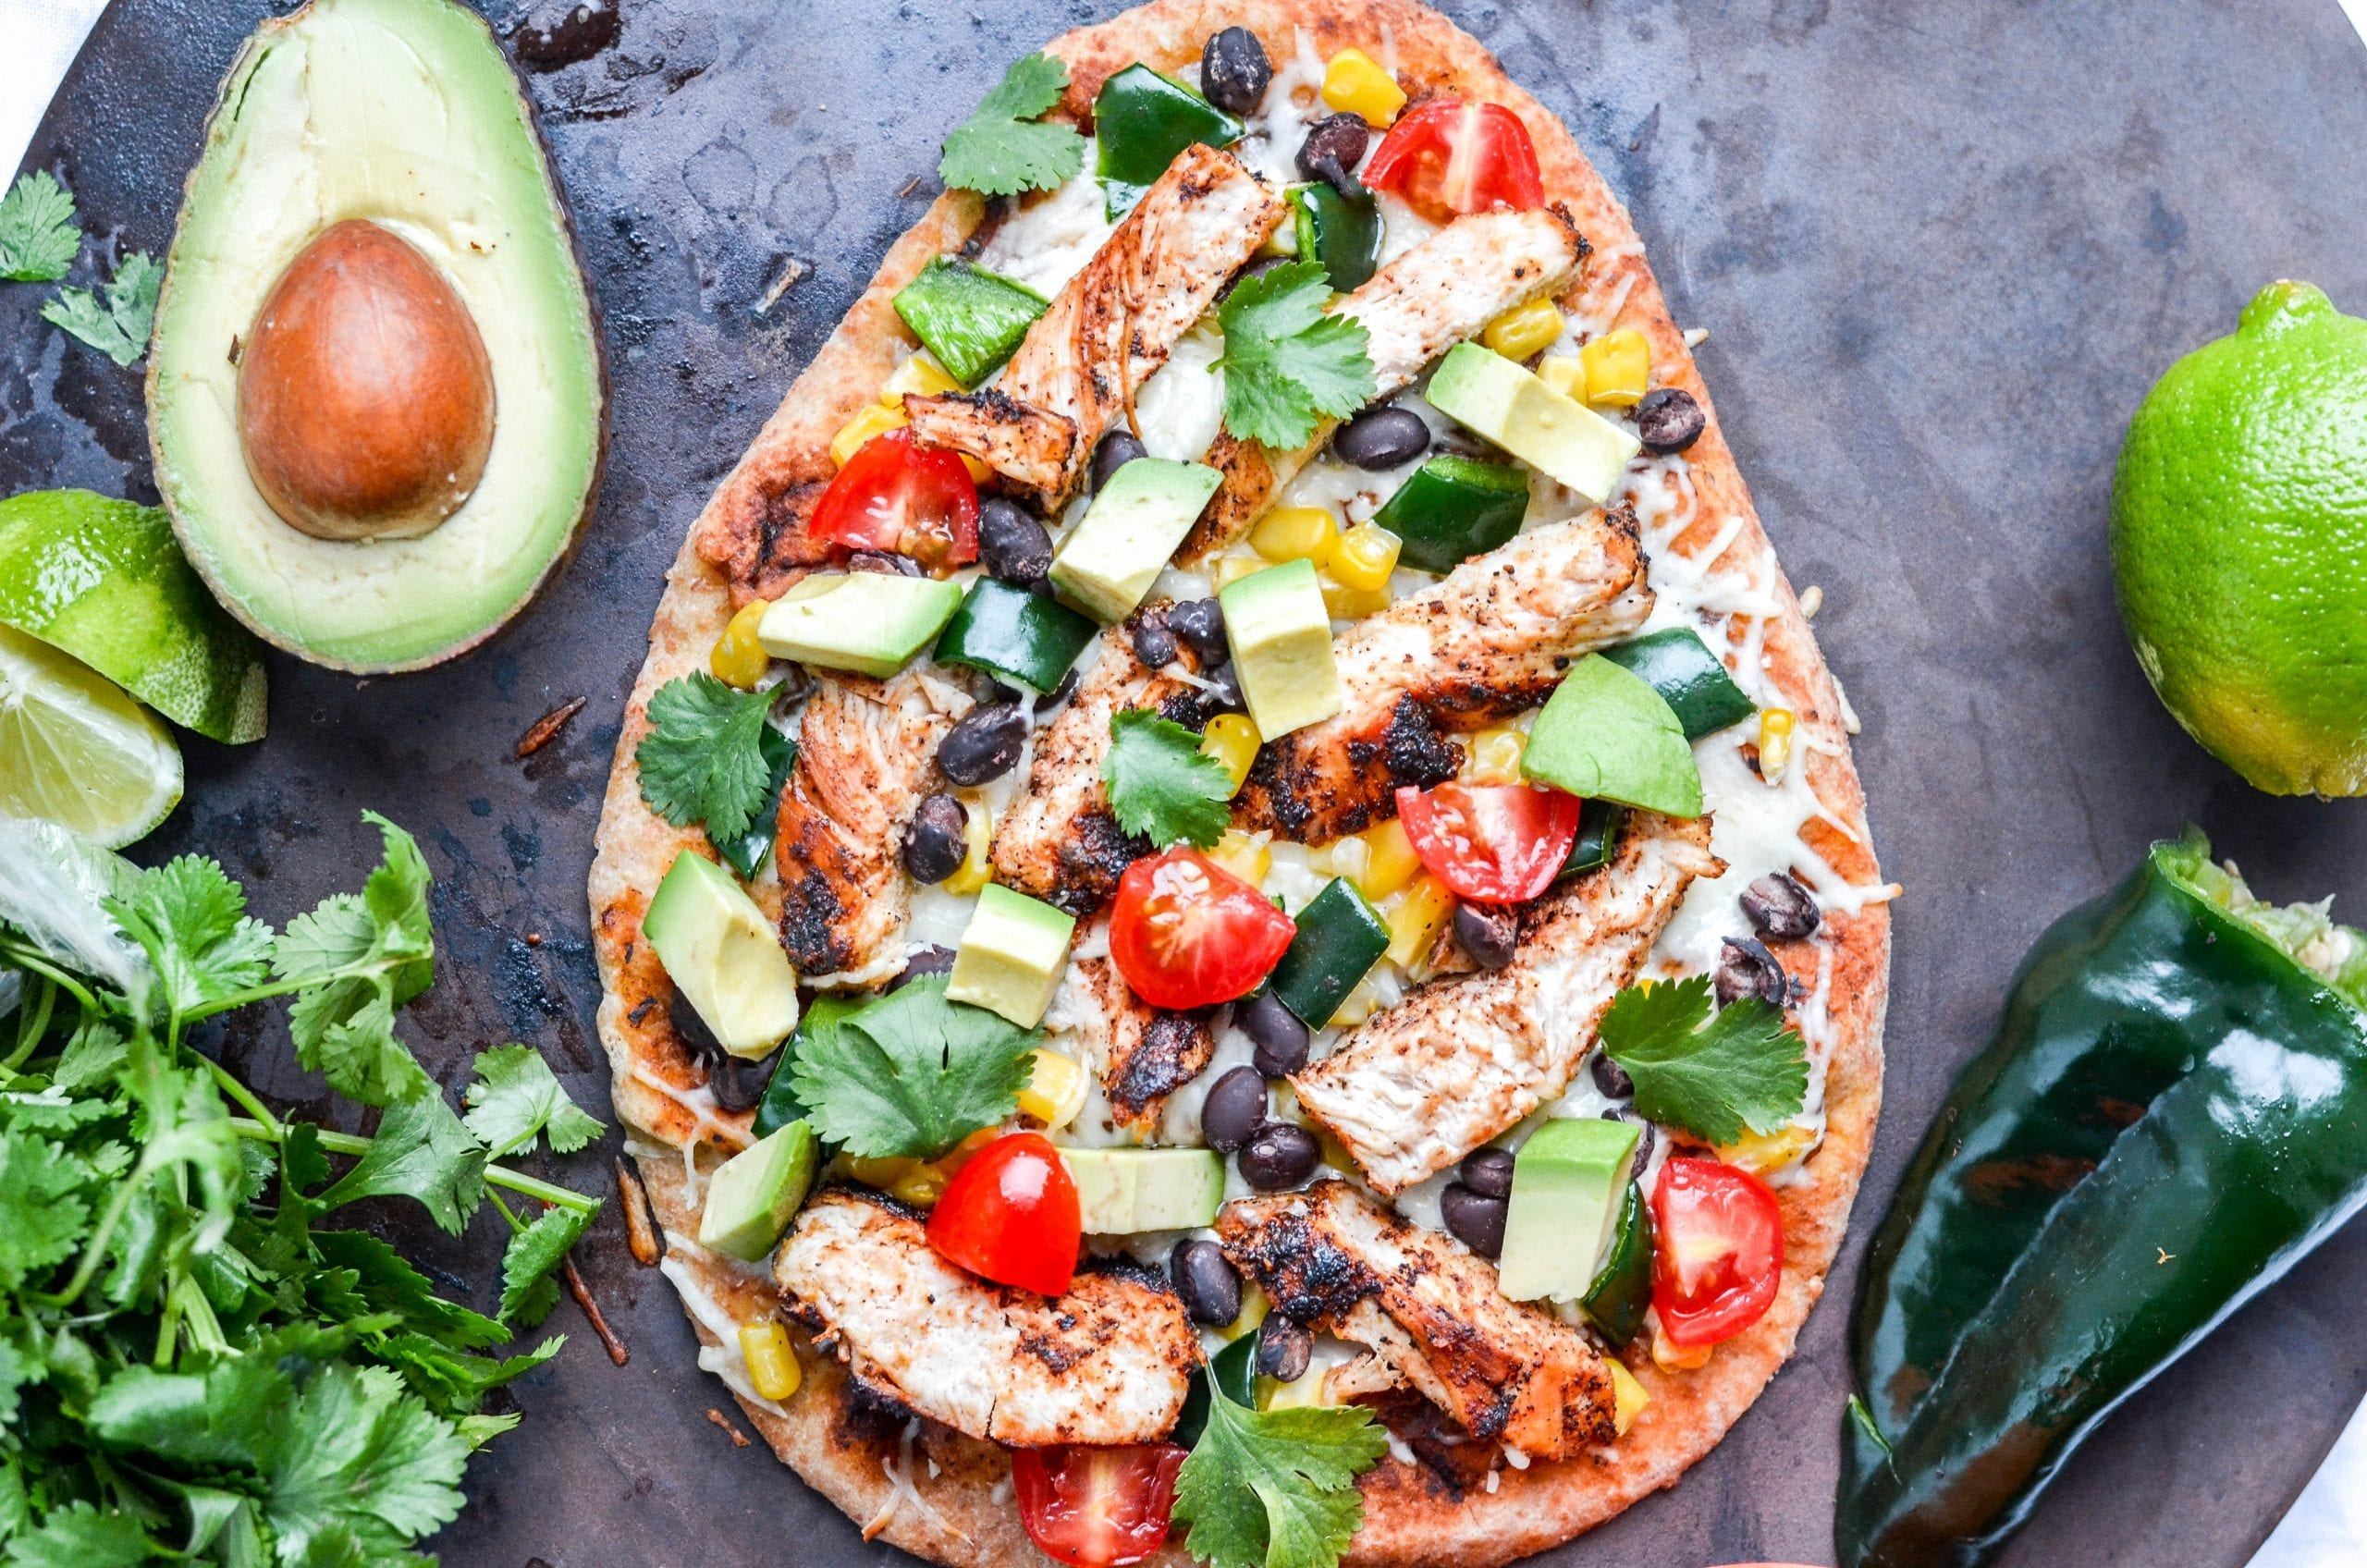 Southwestern Chicken Naan Pizza